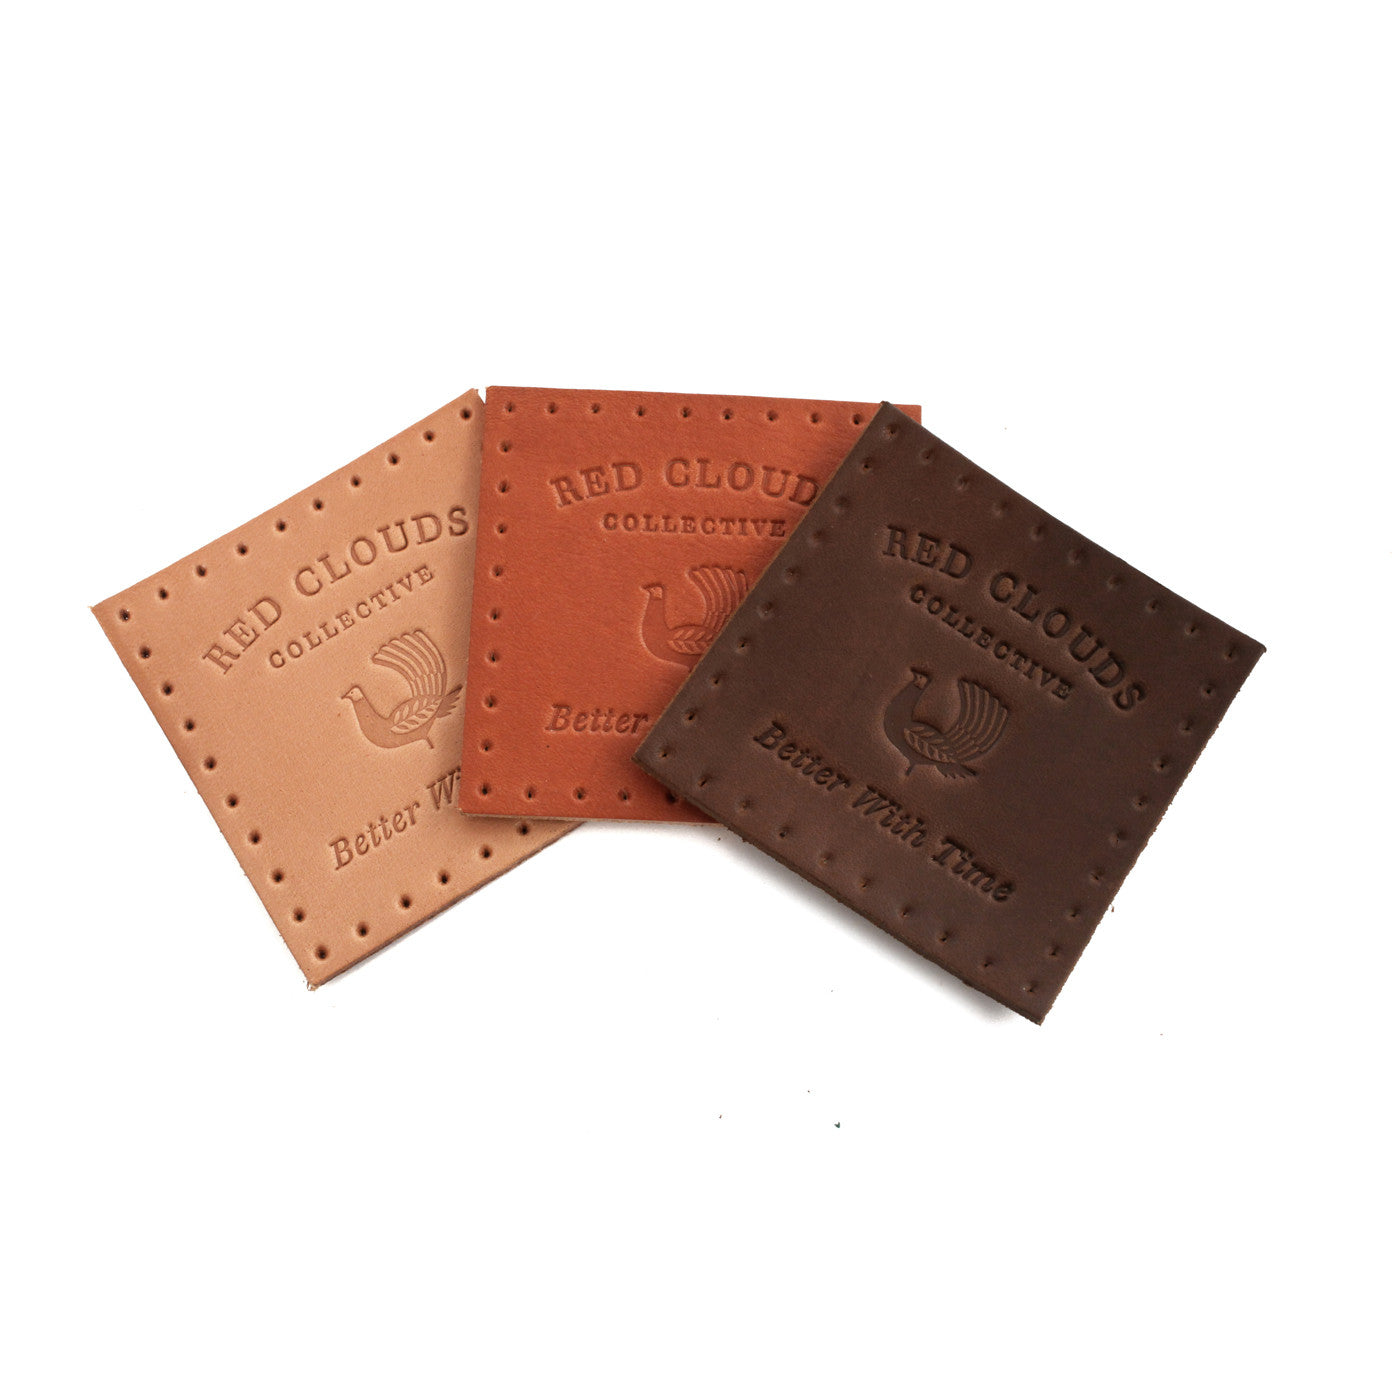 Leather patch, pre-punched holes, red clouds patch, vegetable tanned leather, made in usa, made in oregon, hand sew, better with time